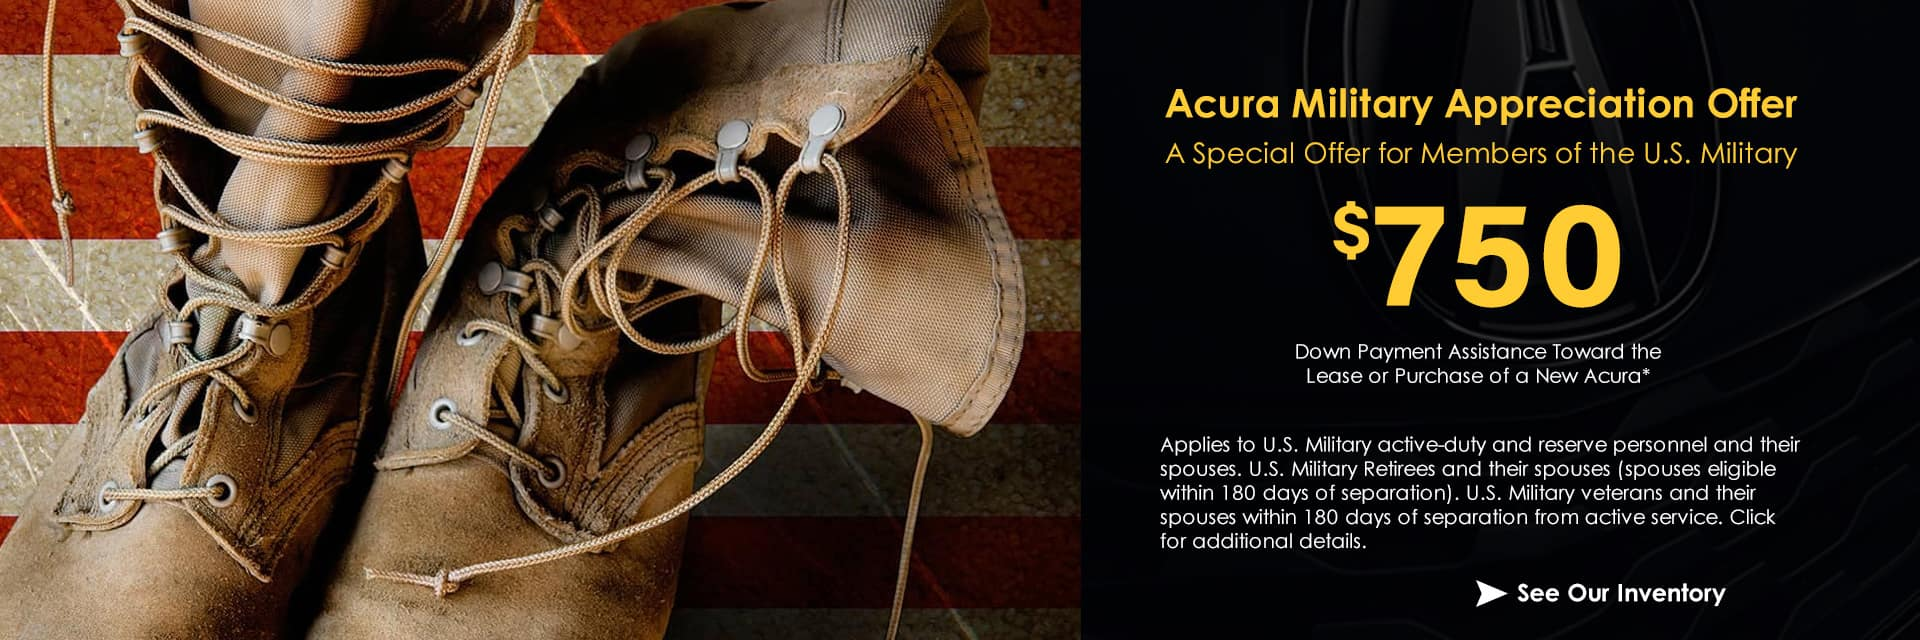 Acura Military Appreciation Offer Sunnyside Acura Nashua NH 03063